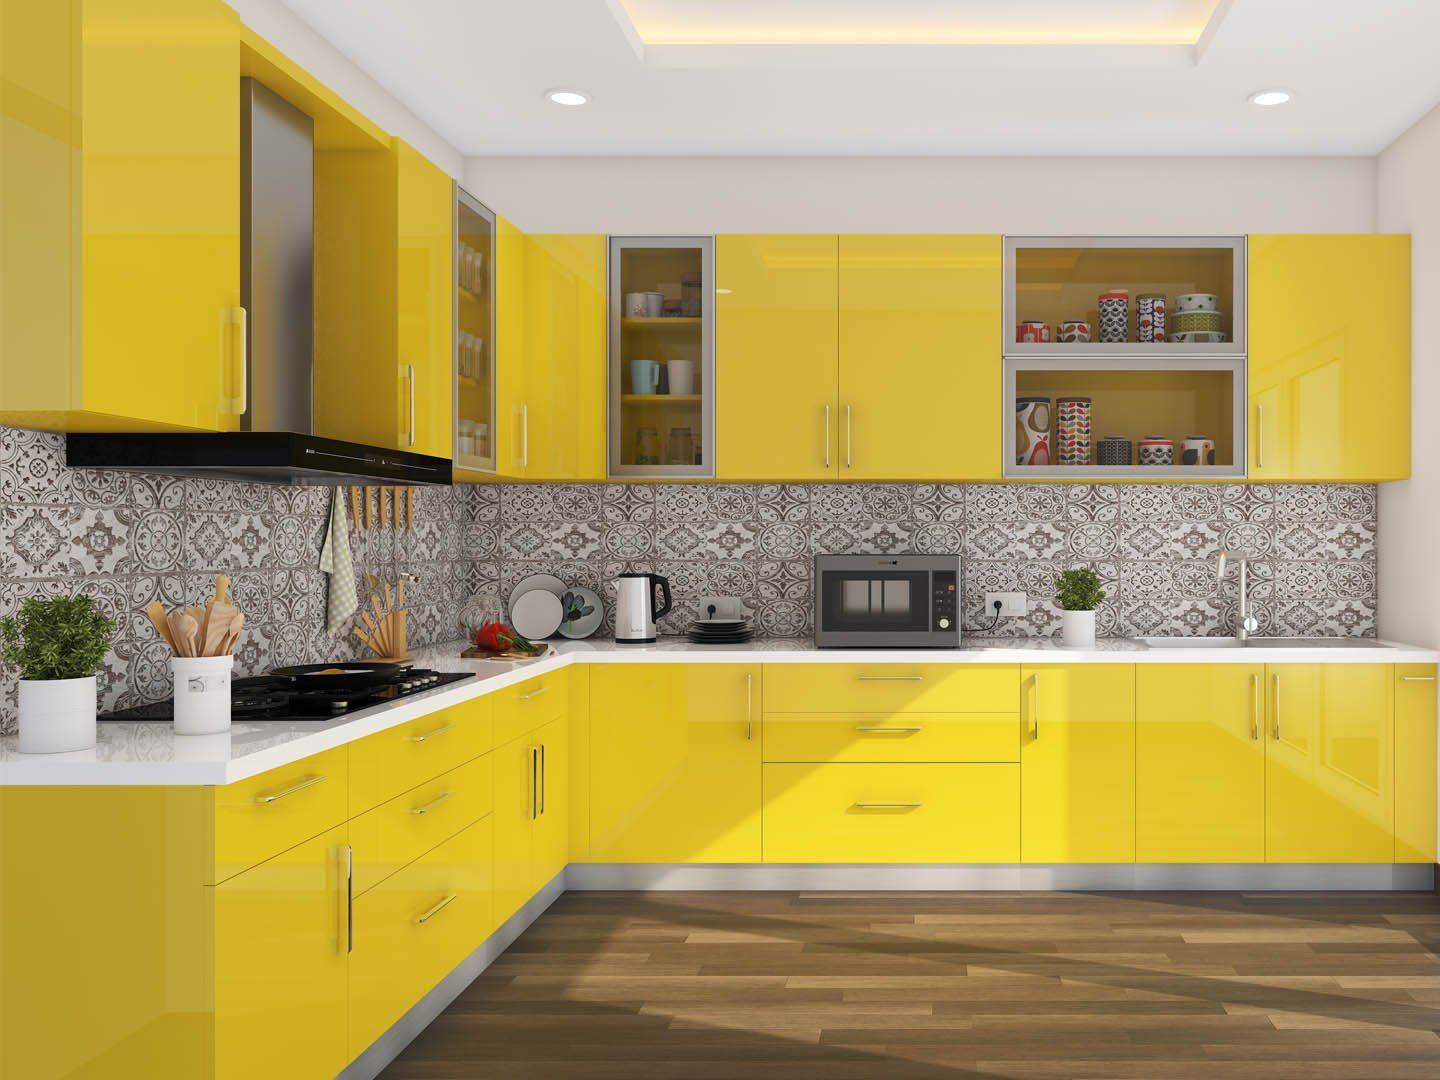 Passion Flower L Shaped Modular Kitchen India   HomeLane in 20 ...